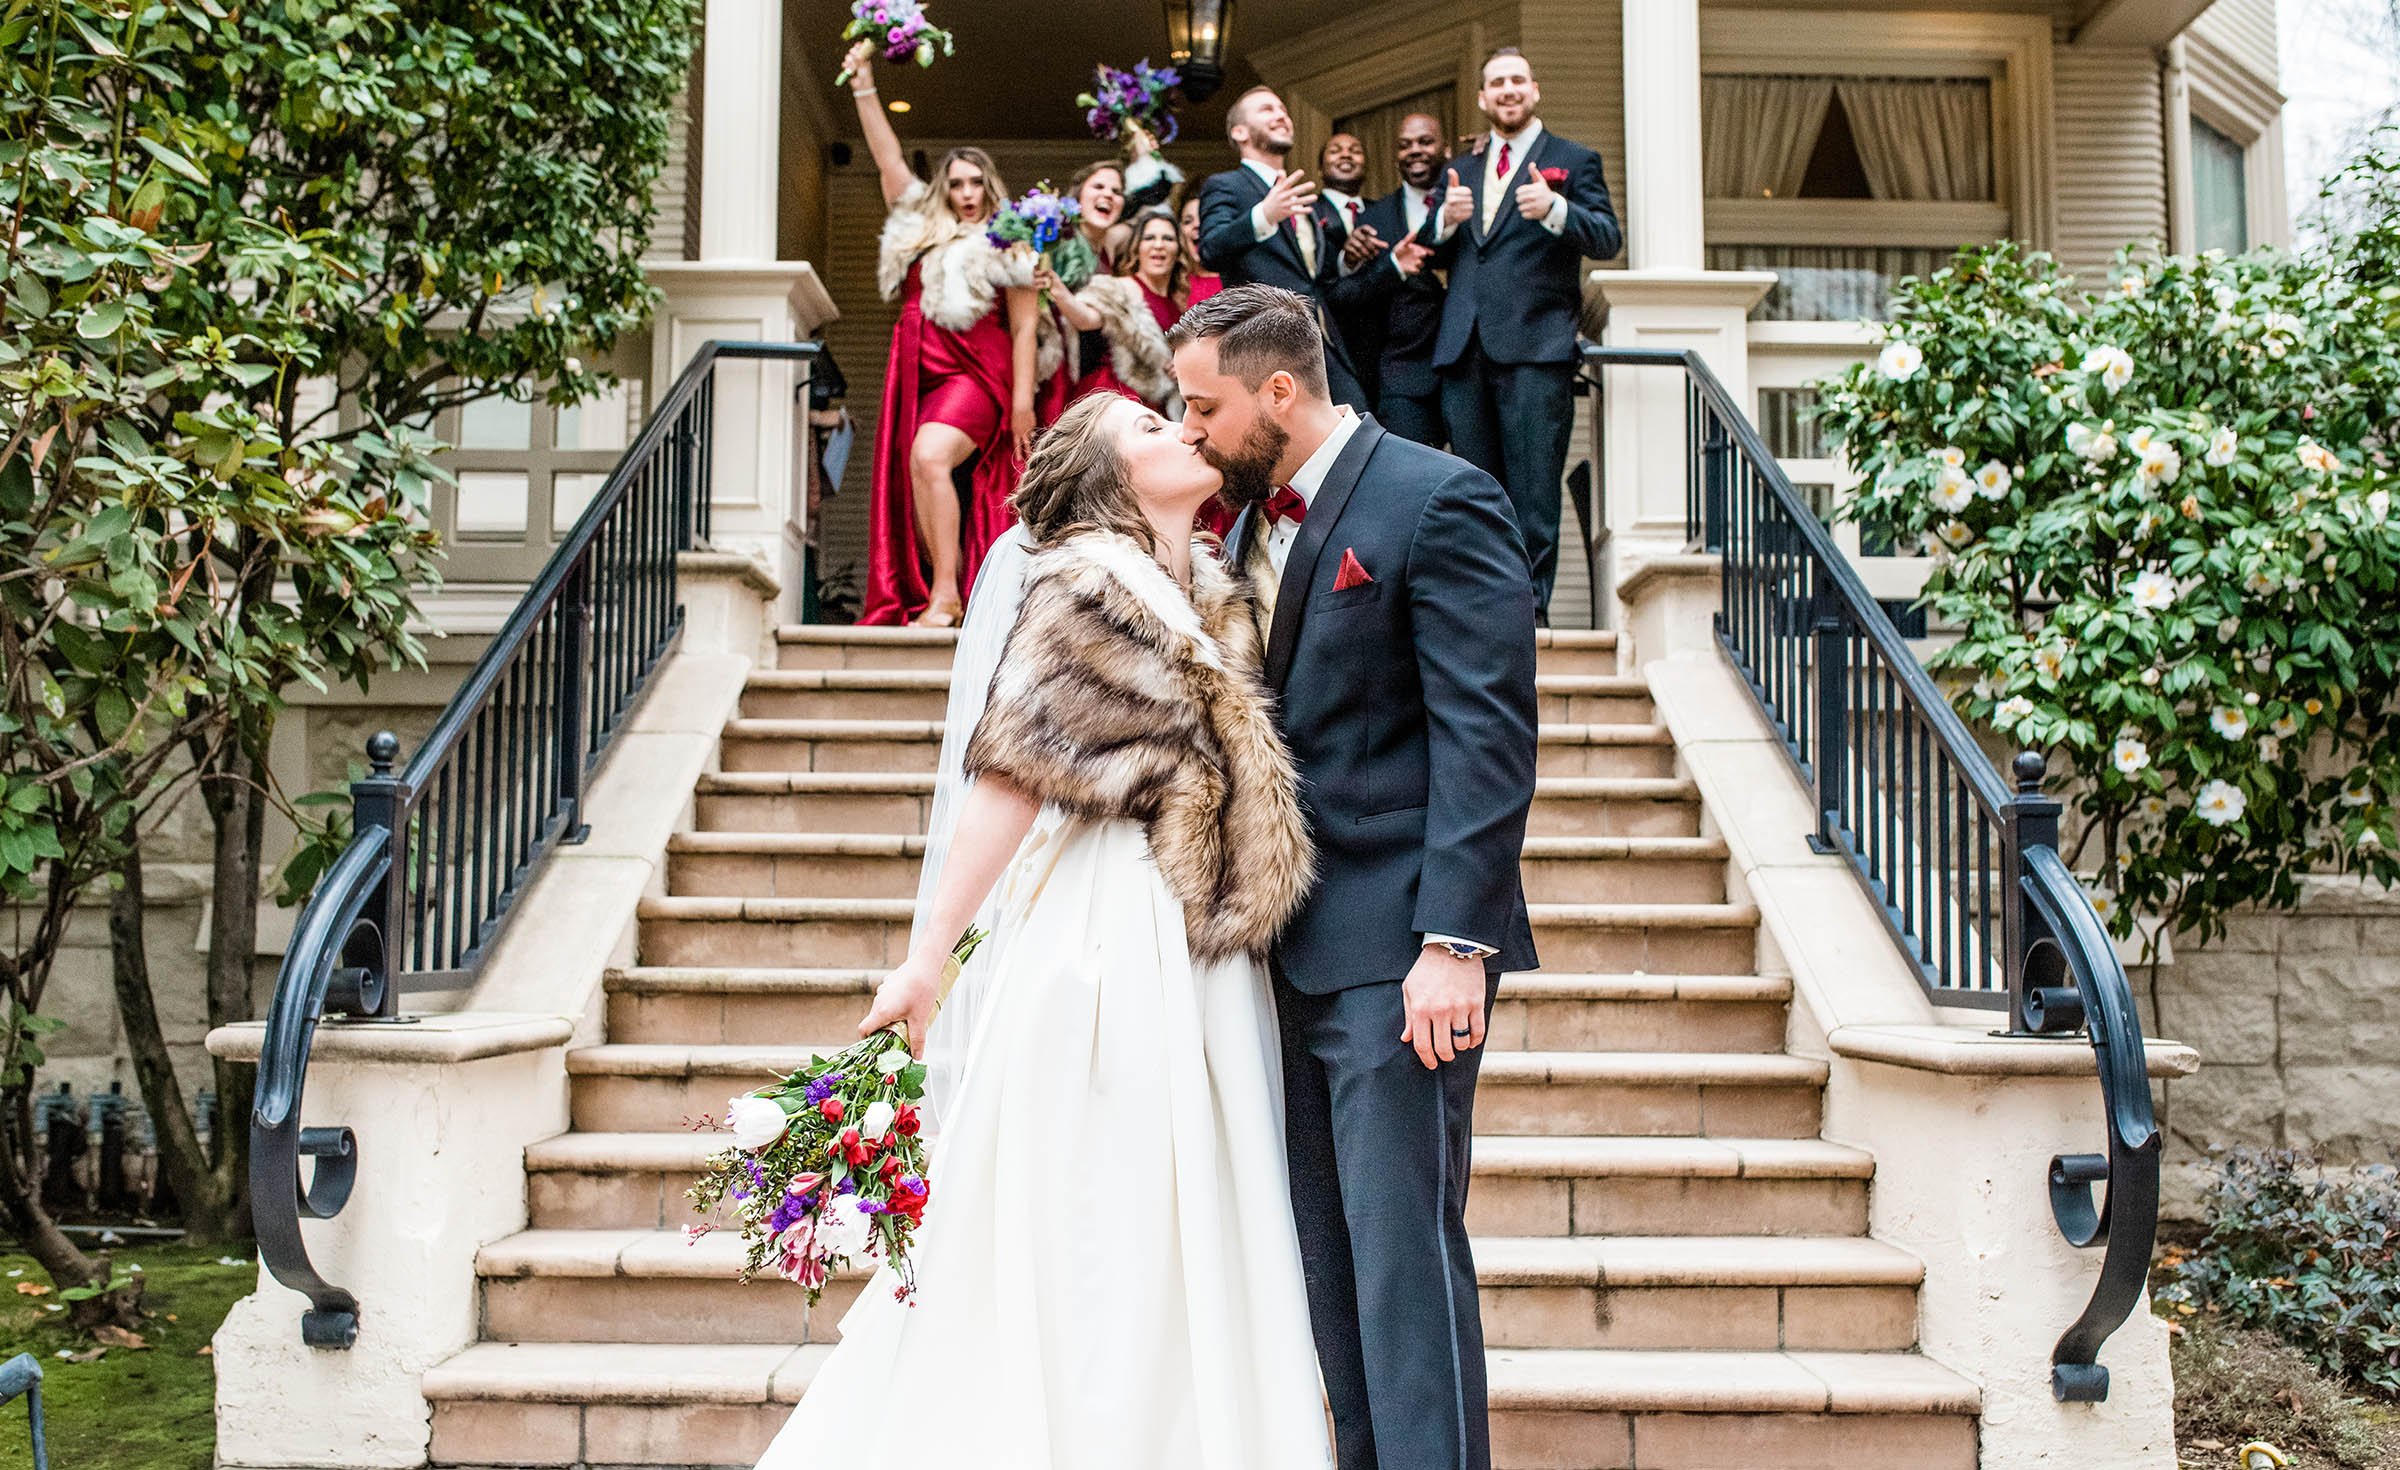 Patio ceremony for intimate weddings - Sterling Hotel - Sacramento, California - Sacramento County - Wedgewood Weddings